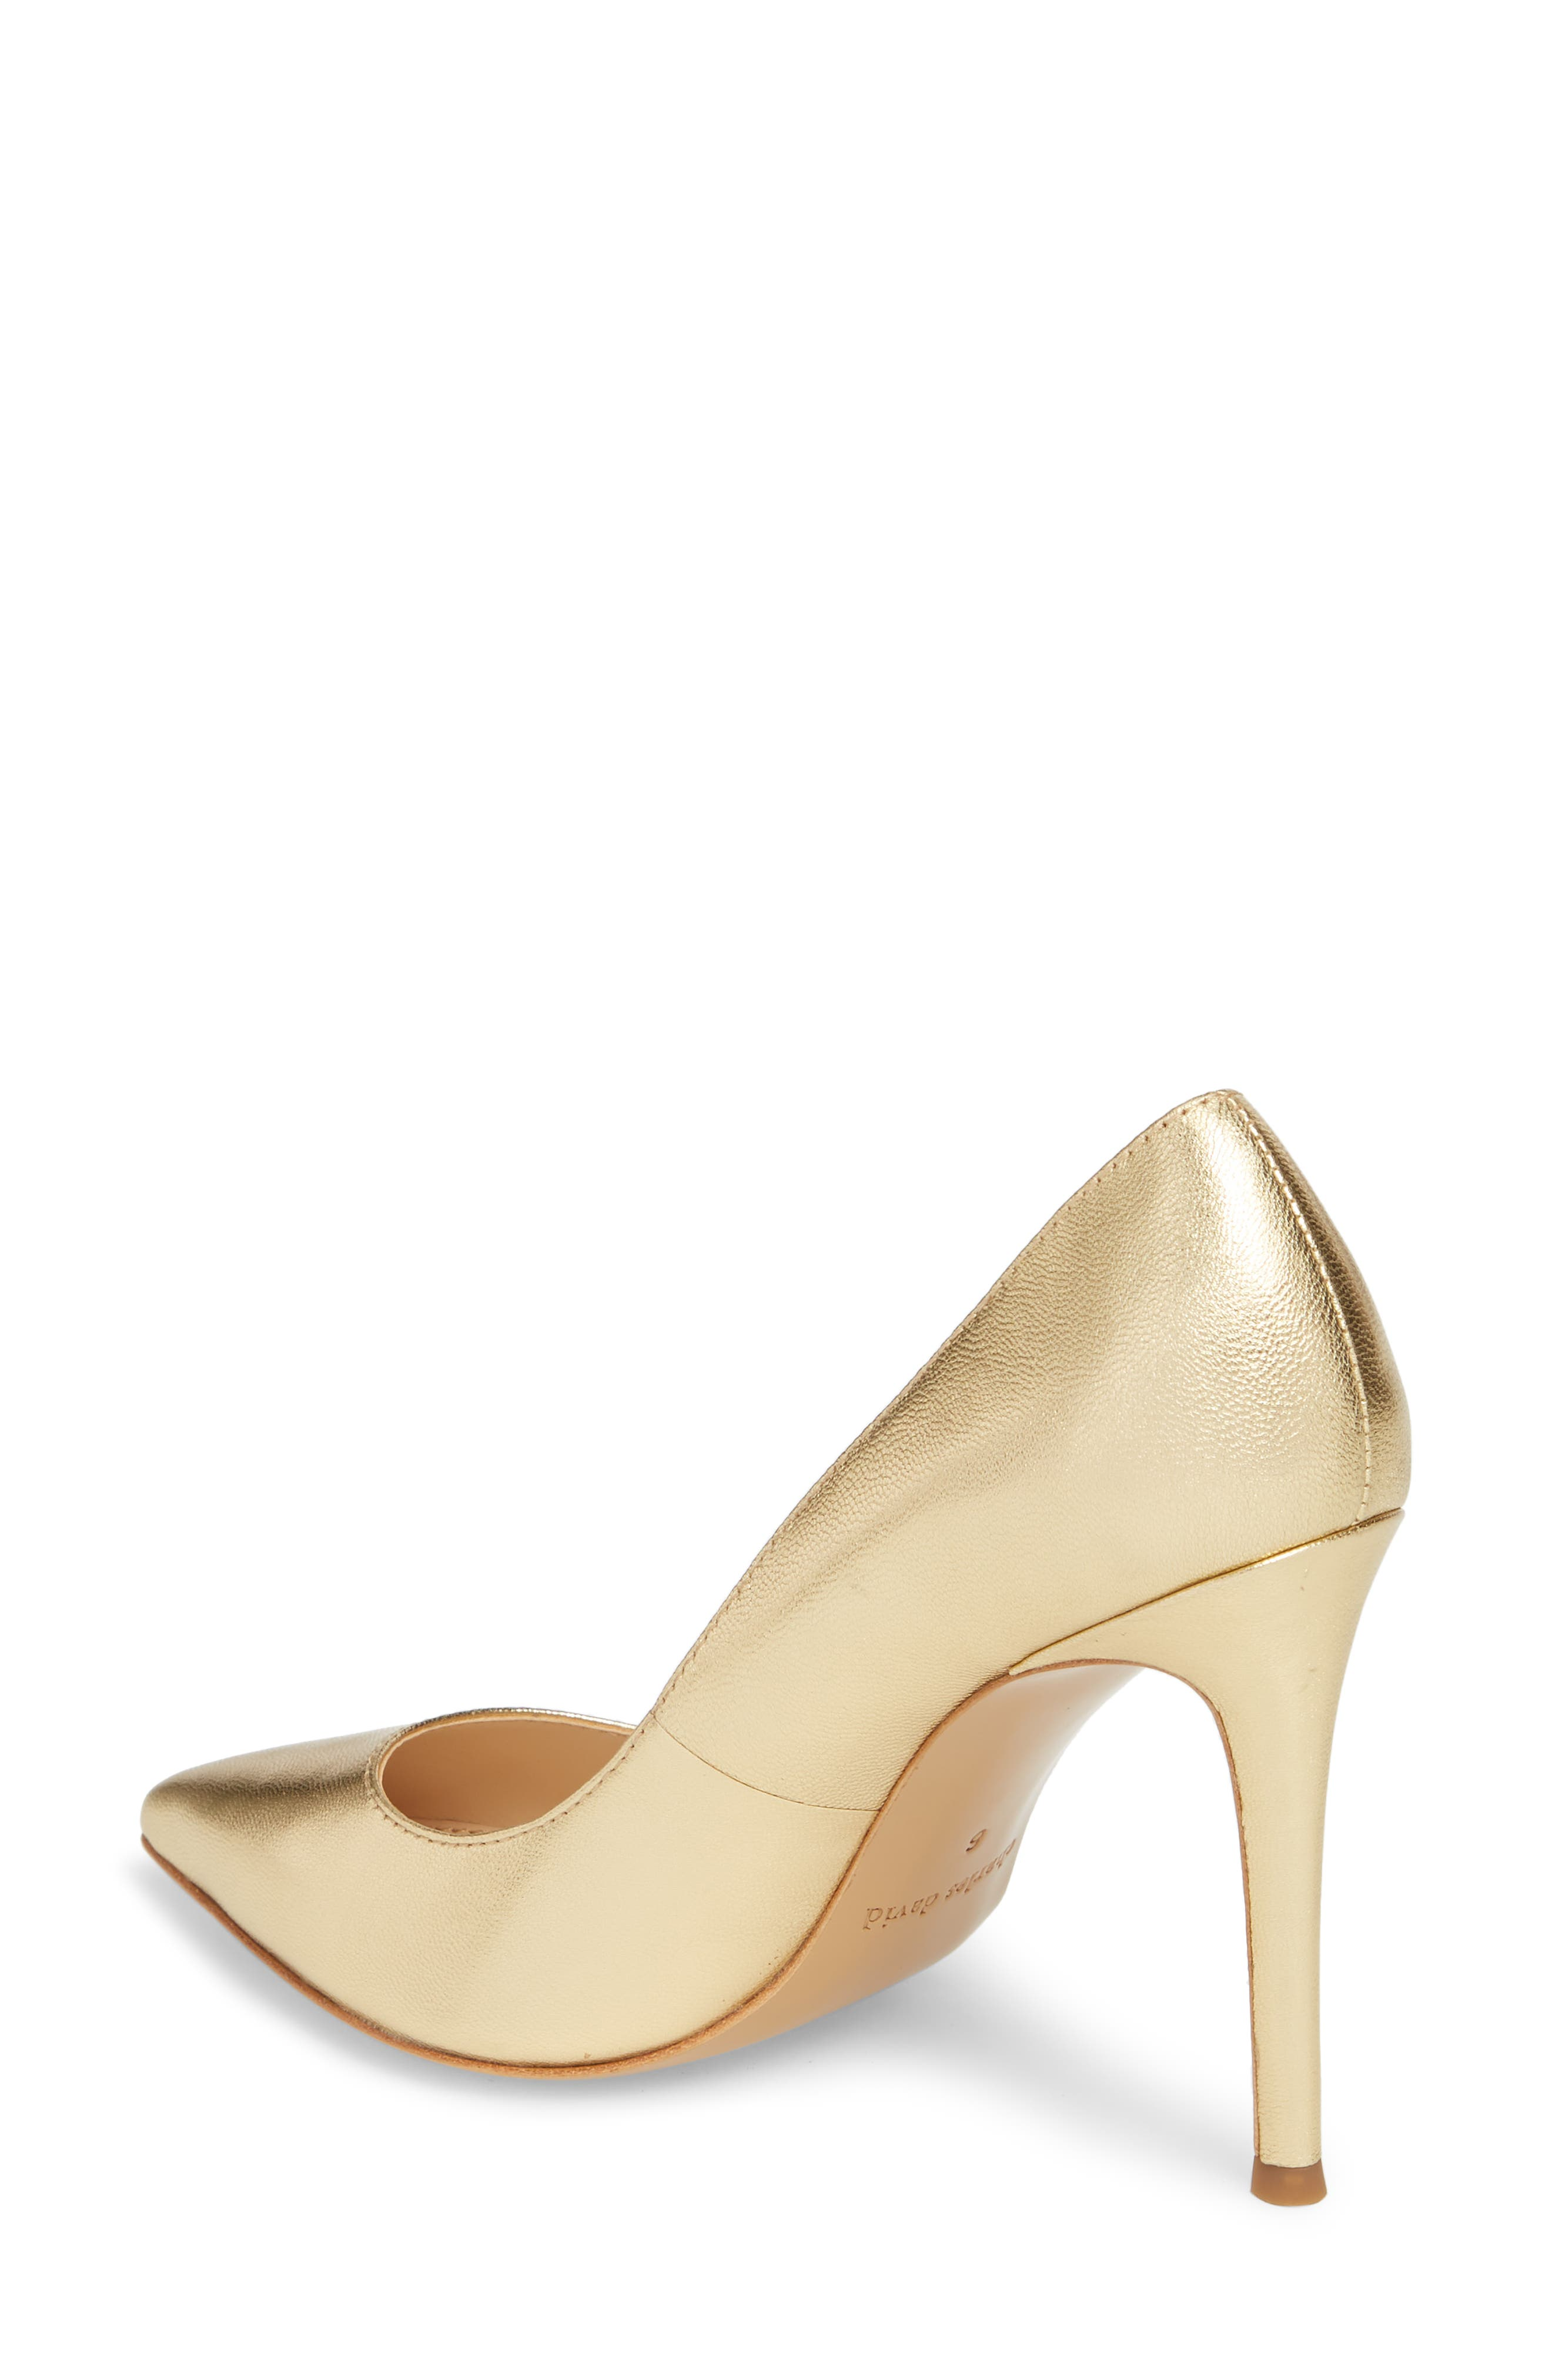 Calessi Pointy Toe Pump,                             Alternate thumbnail 2, color,                             GOLD LEATHER